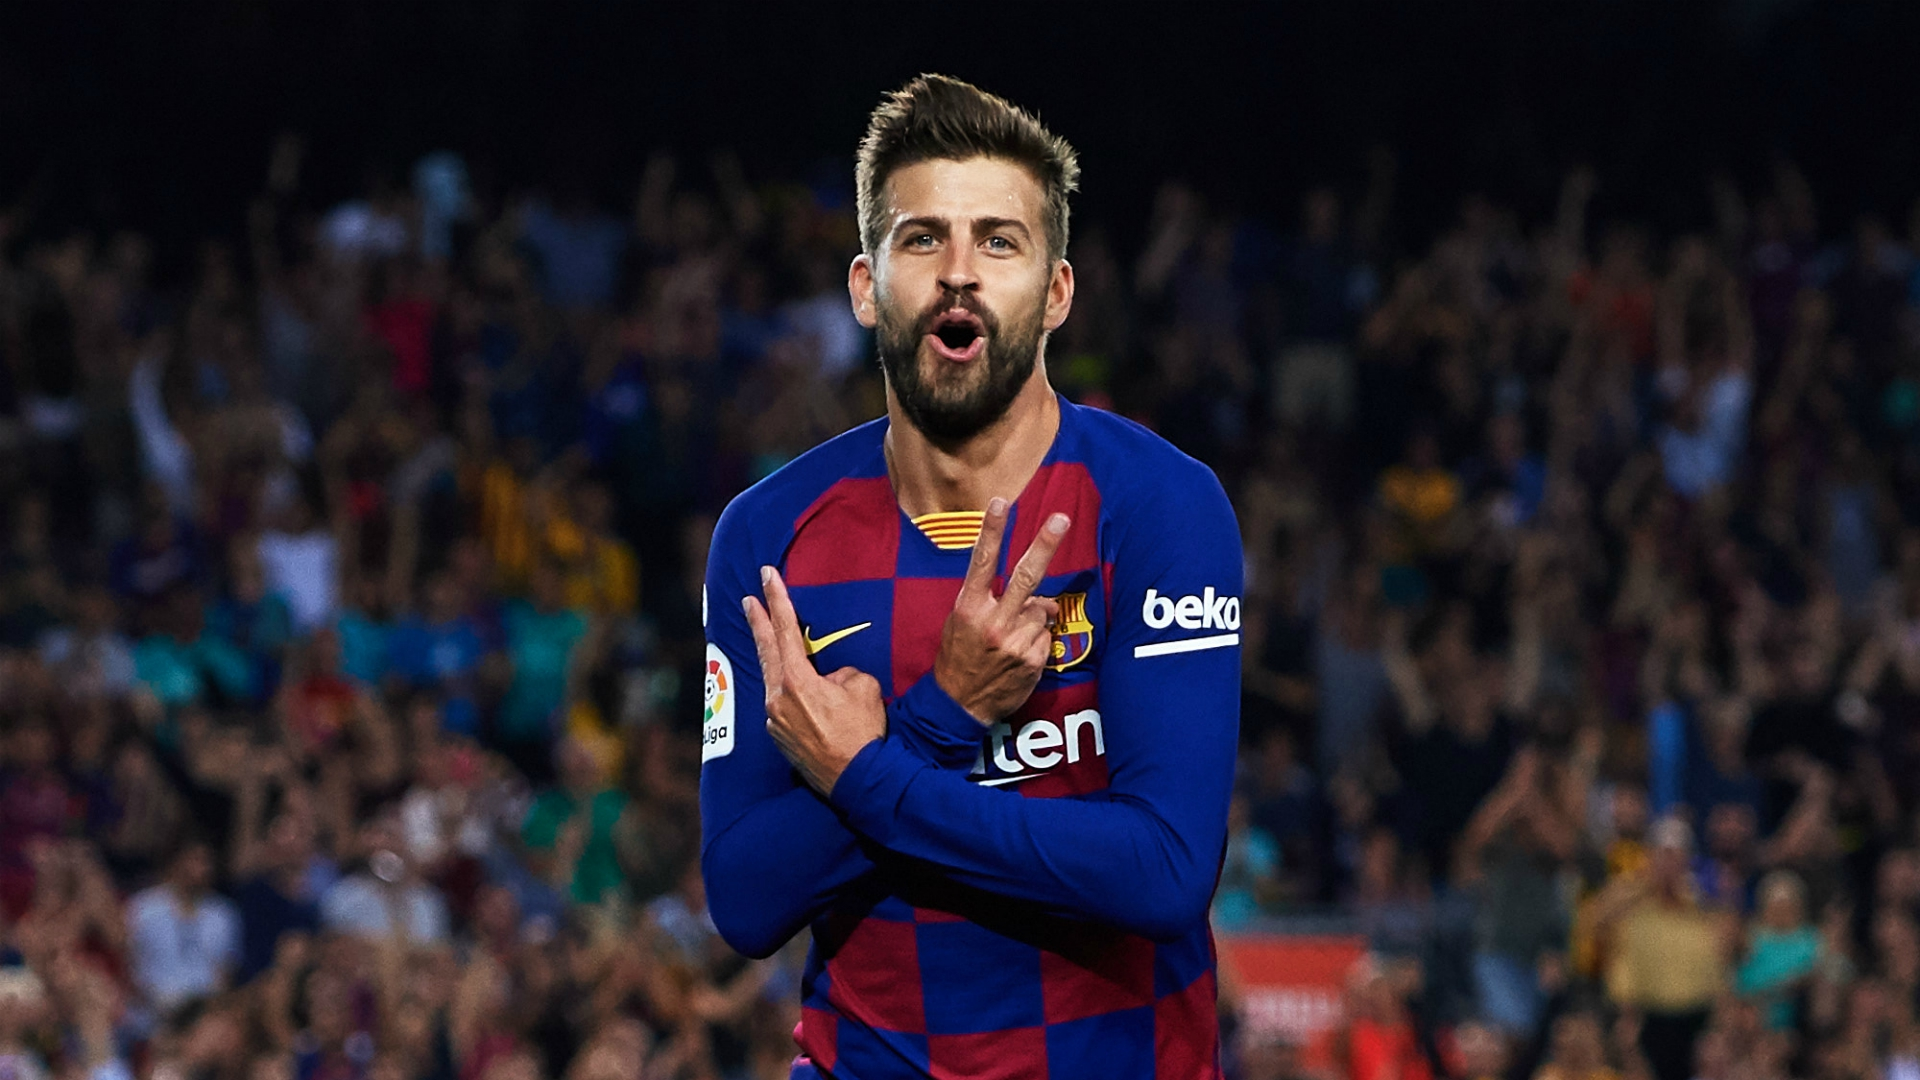 Real Madrid - Un ancien du club charge Gérard Piqué